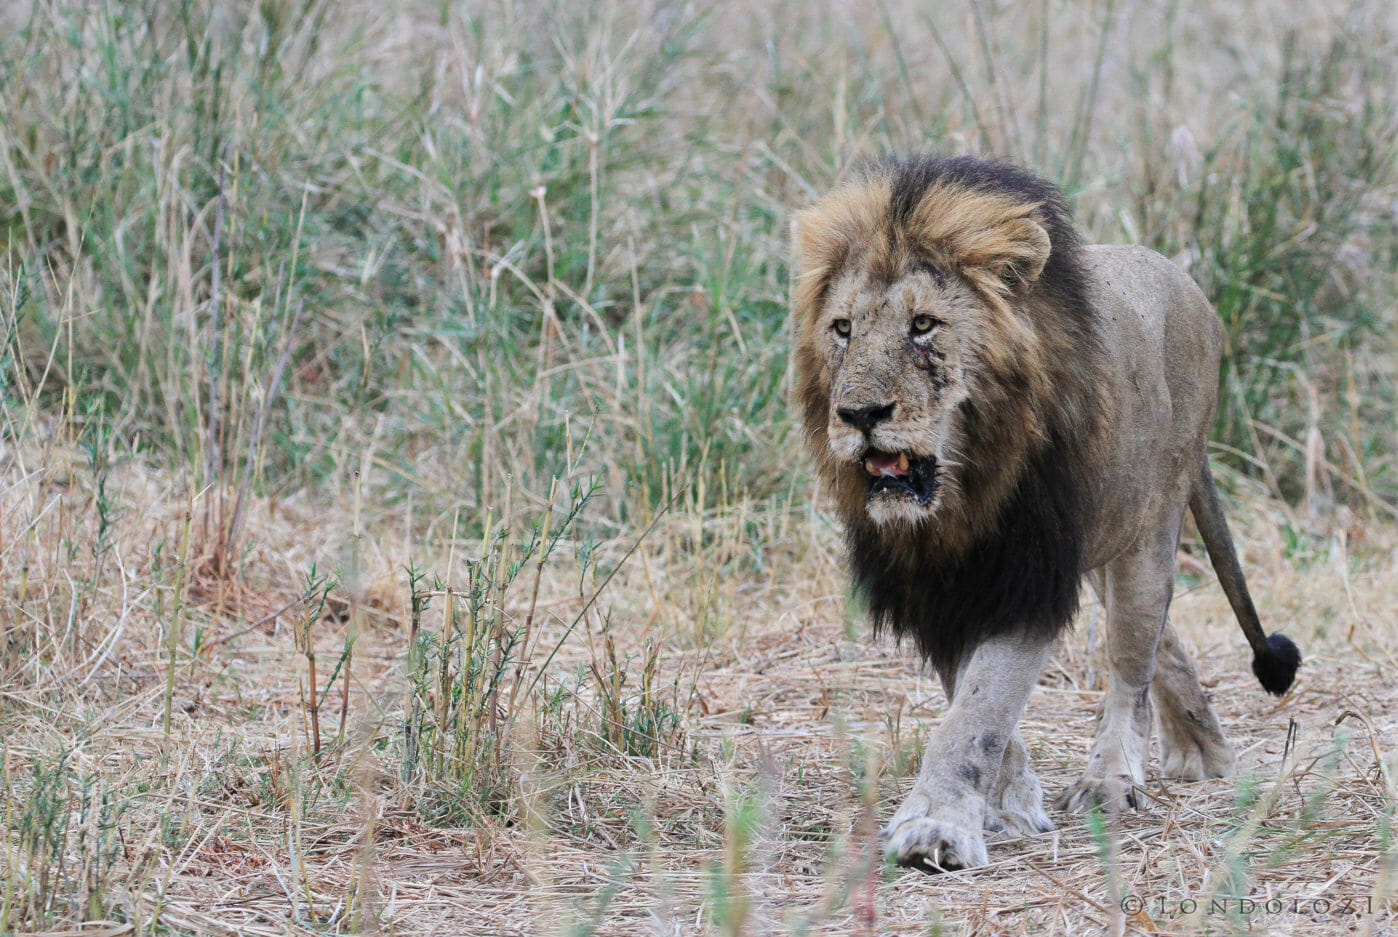 A maned male lion with a scarred face walks past the camera at Londolozi